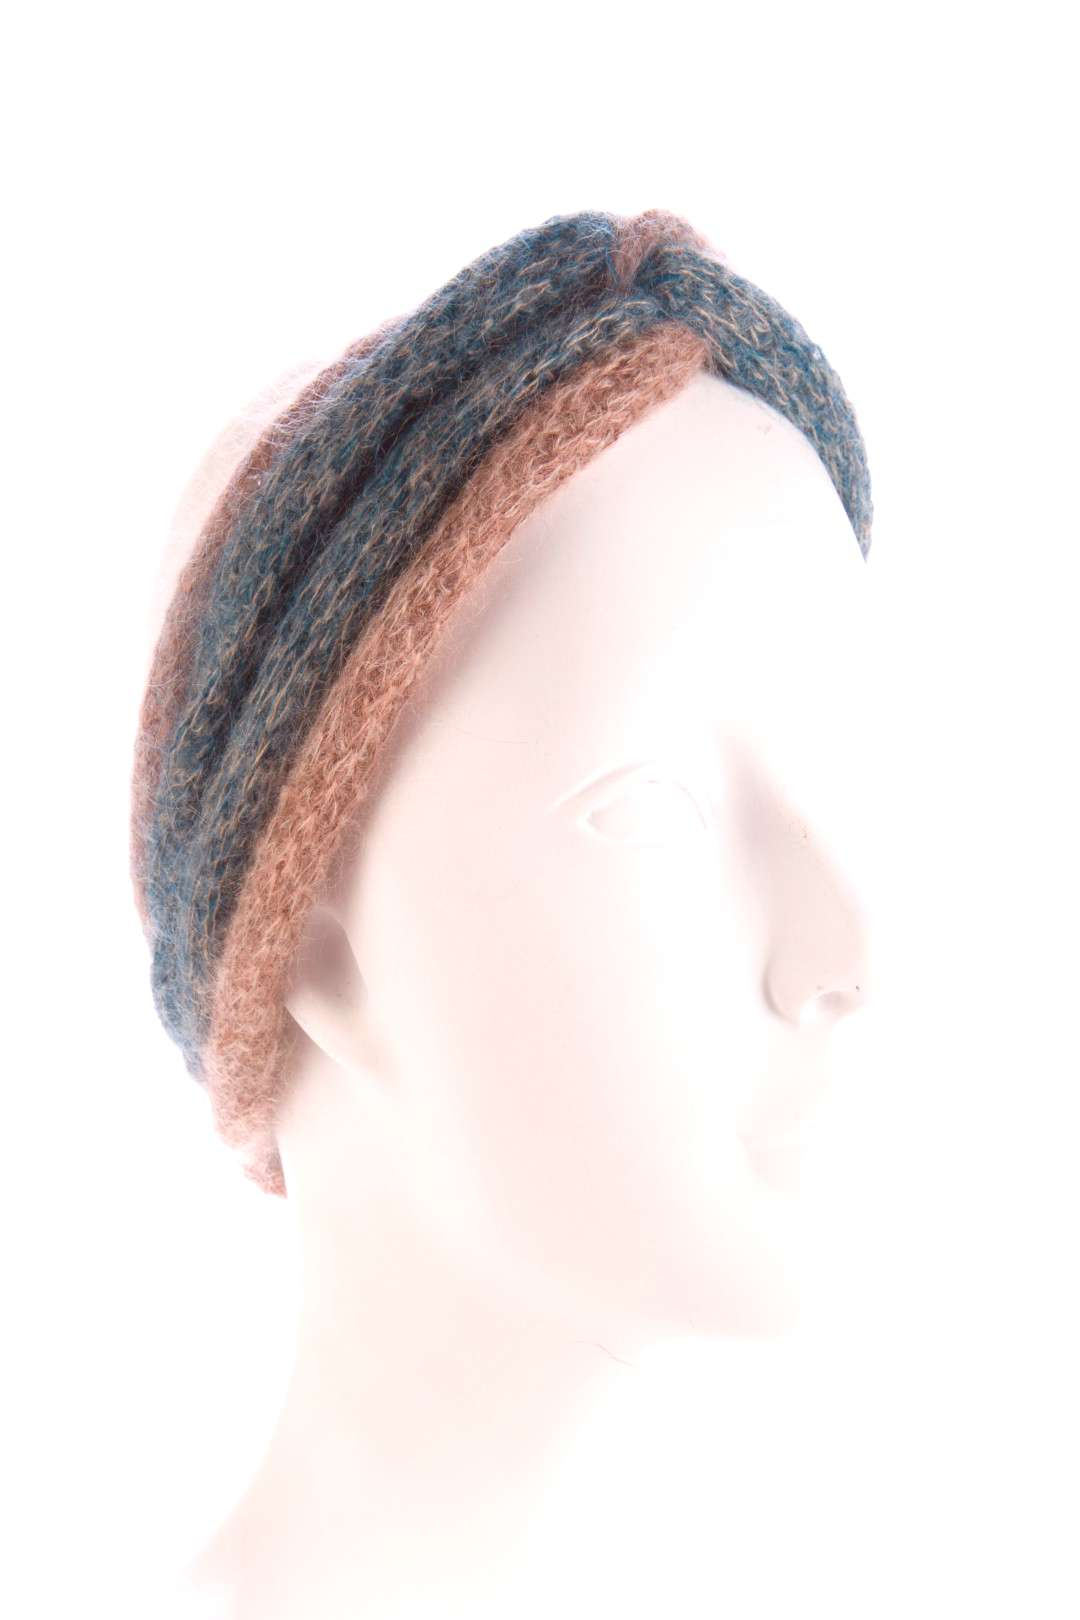 Missoni Braided Knit Headband - Accessories -           MIS37636 | The RealReal ...,  Missoni Braid